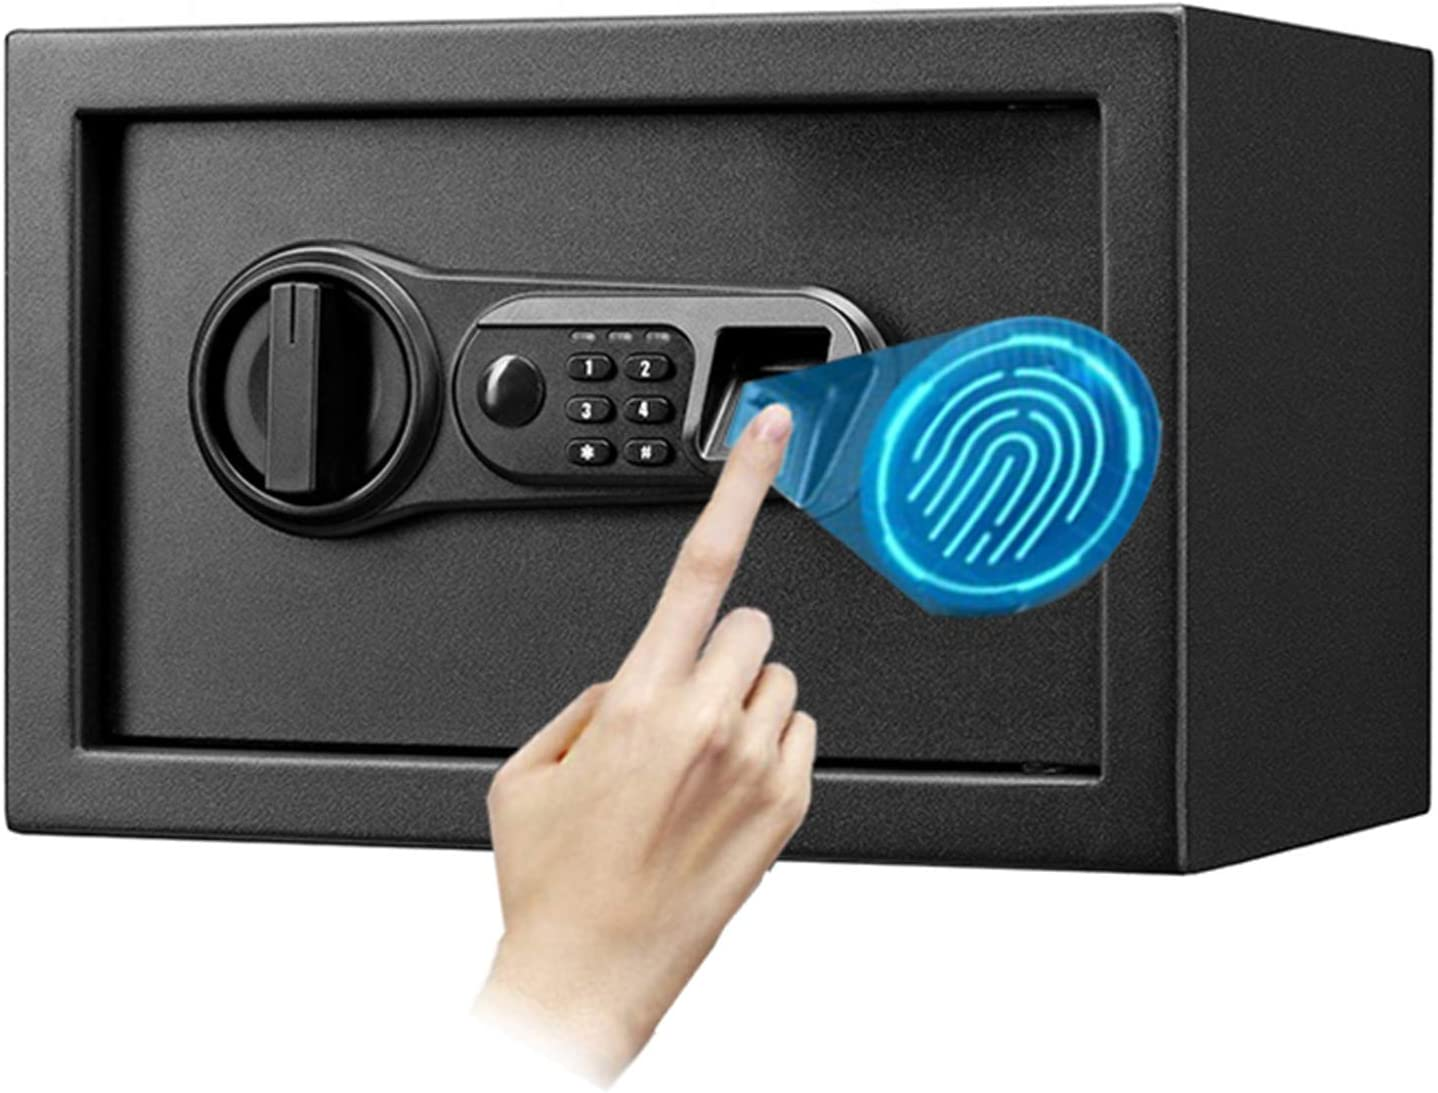 YJF-ZWS Wall Safe Fingerprint Box w Super sale period limited Home for Bedside Max 85% OFF